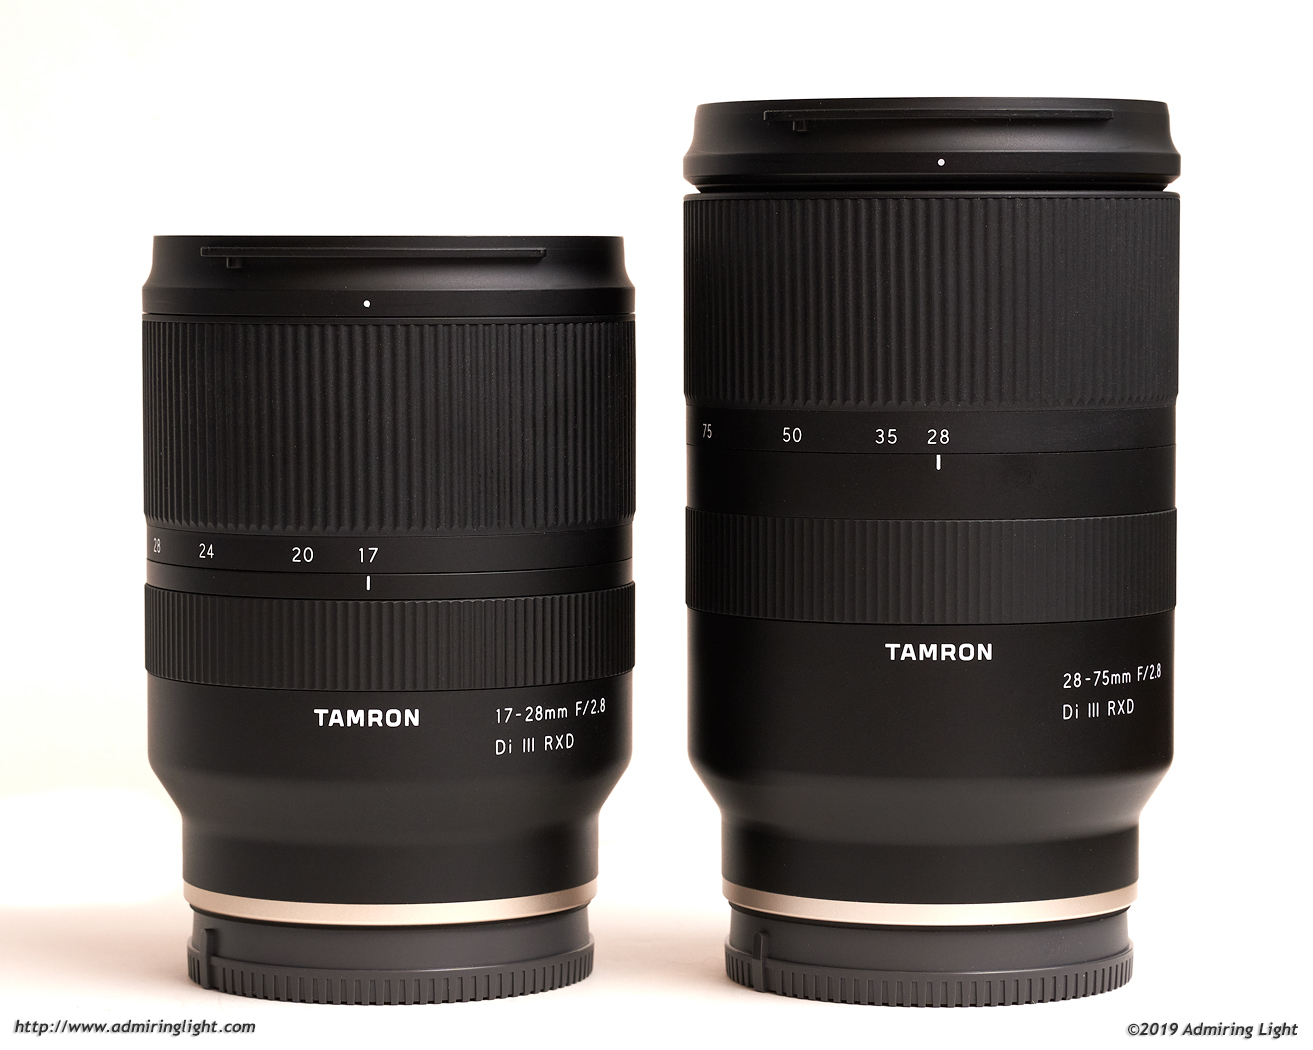 Review: Tamron 17-28mm f/2.8 Di III RXD - Admiring Light